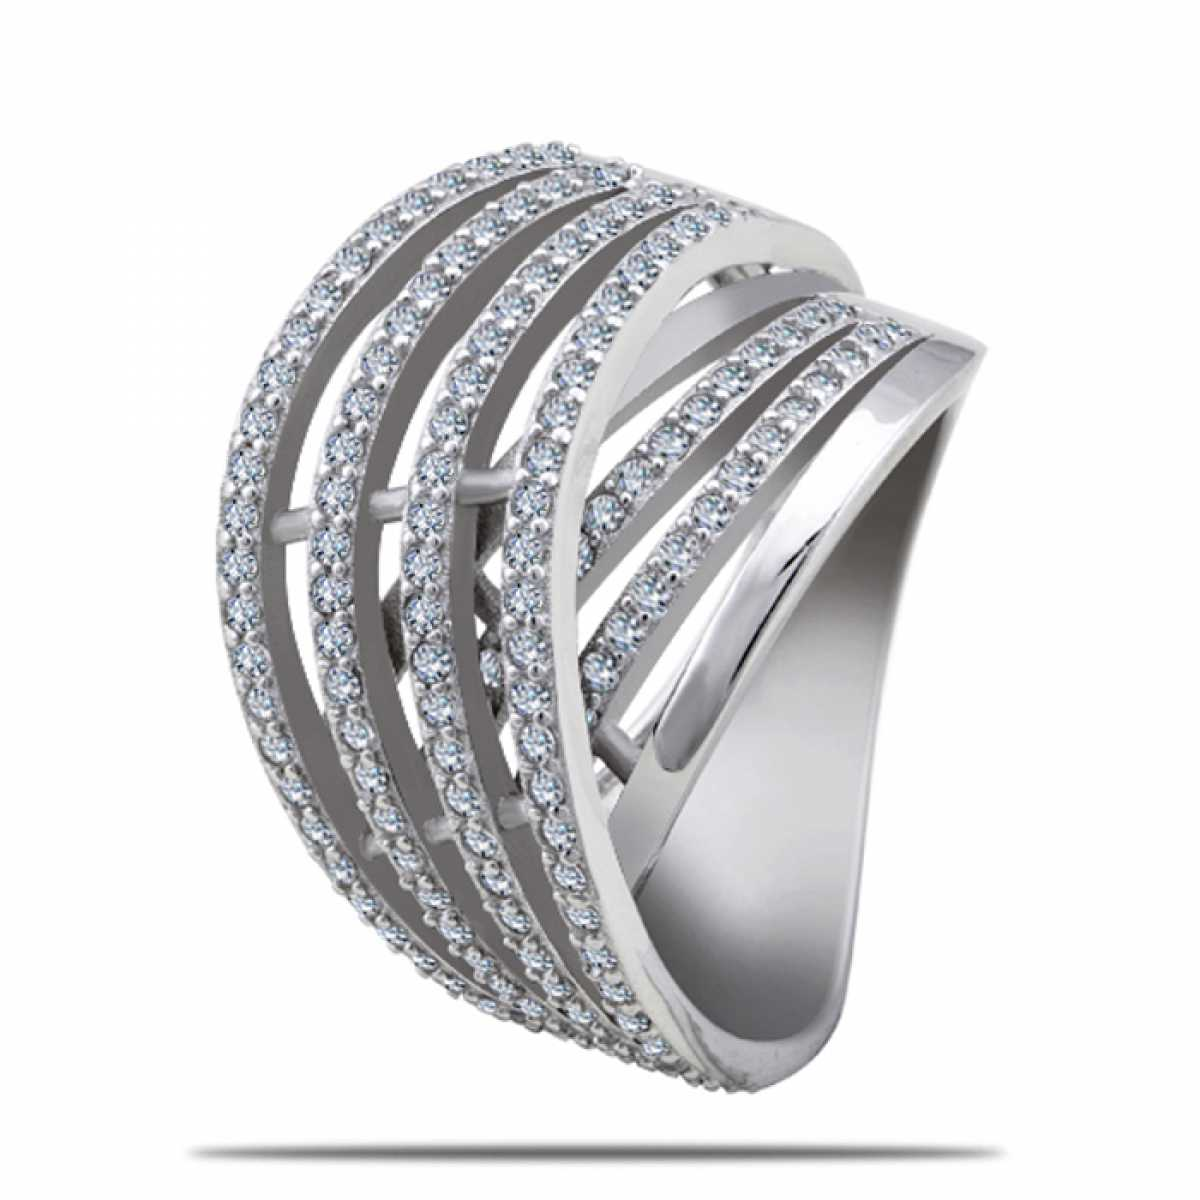 Crosing With Diamonds Silver Ring